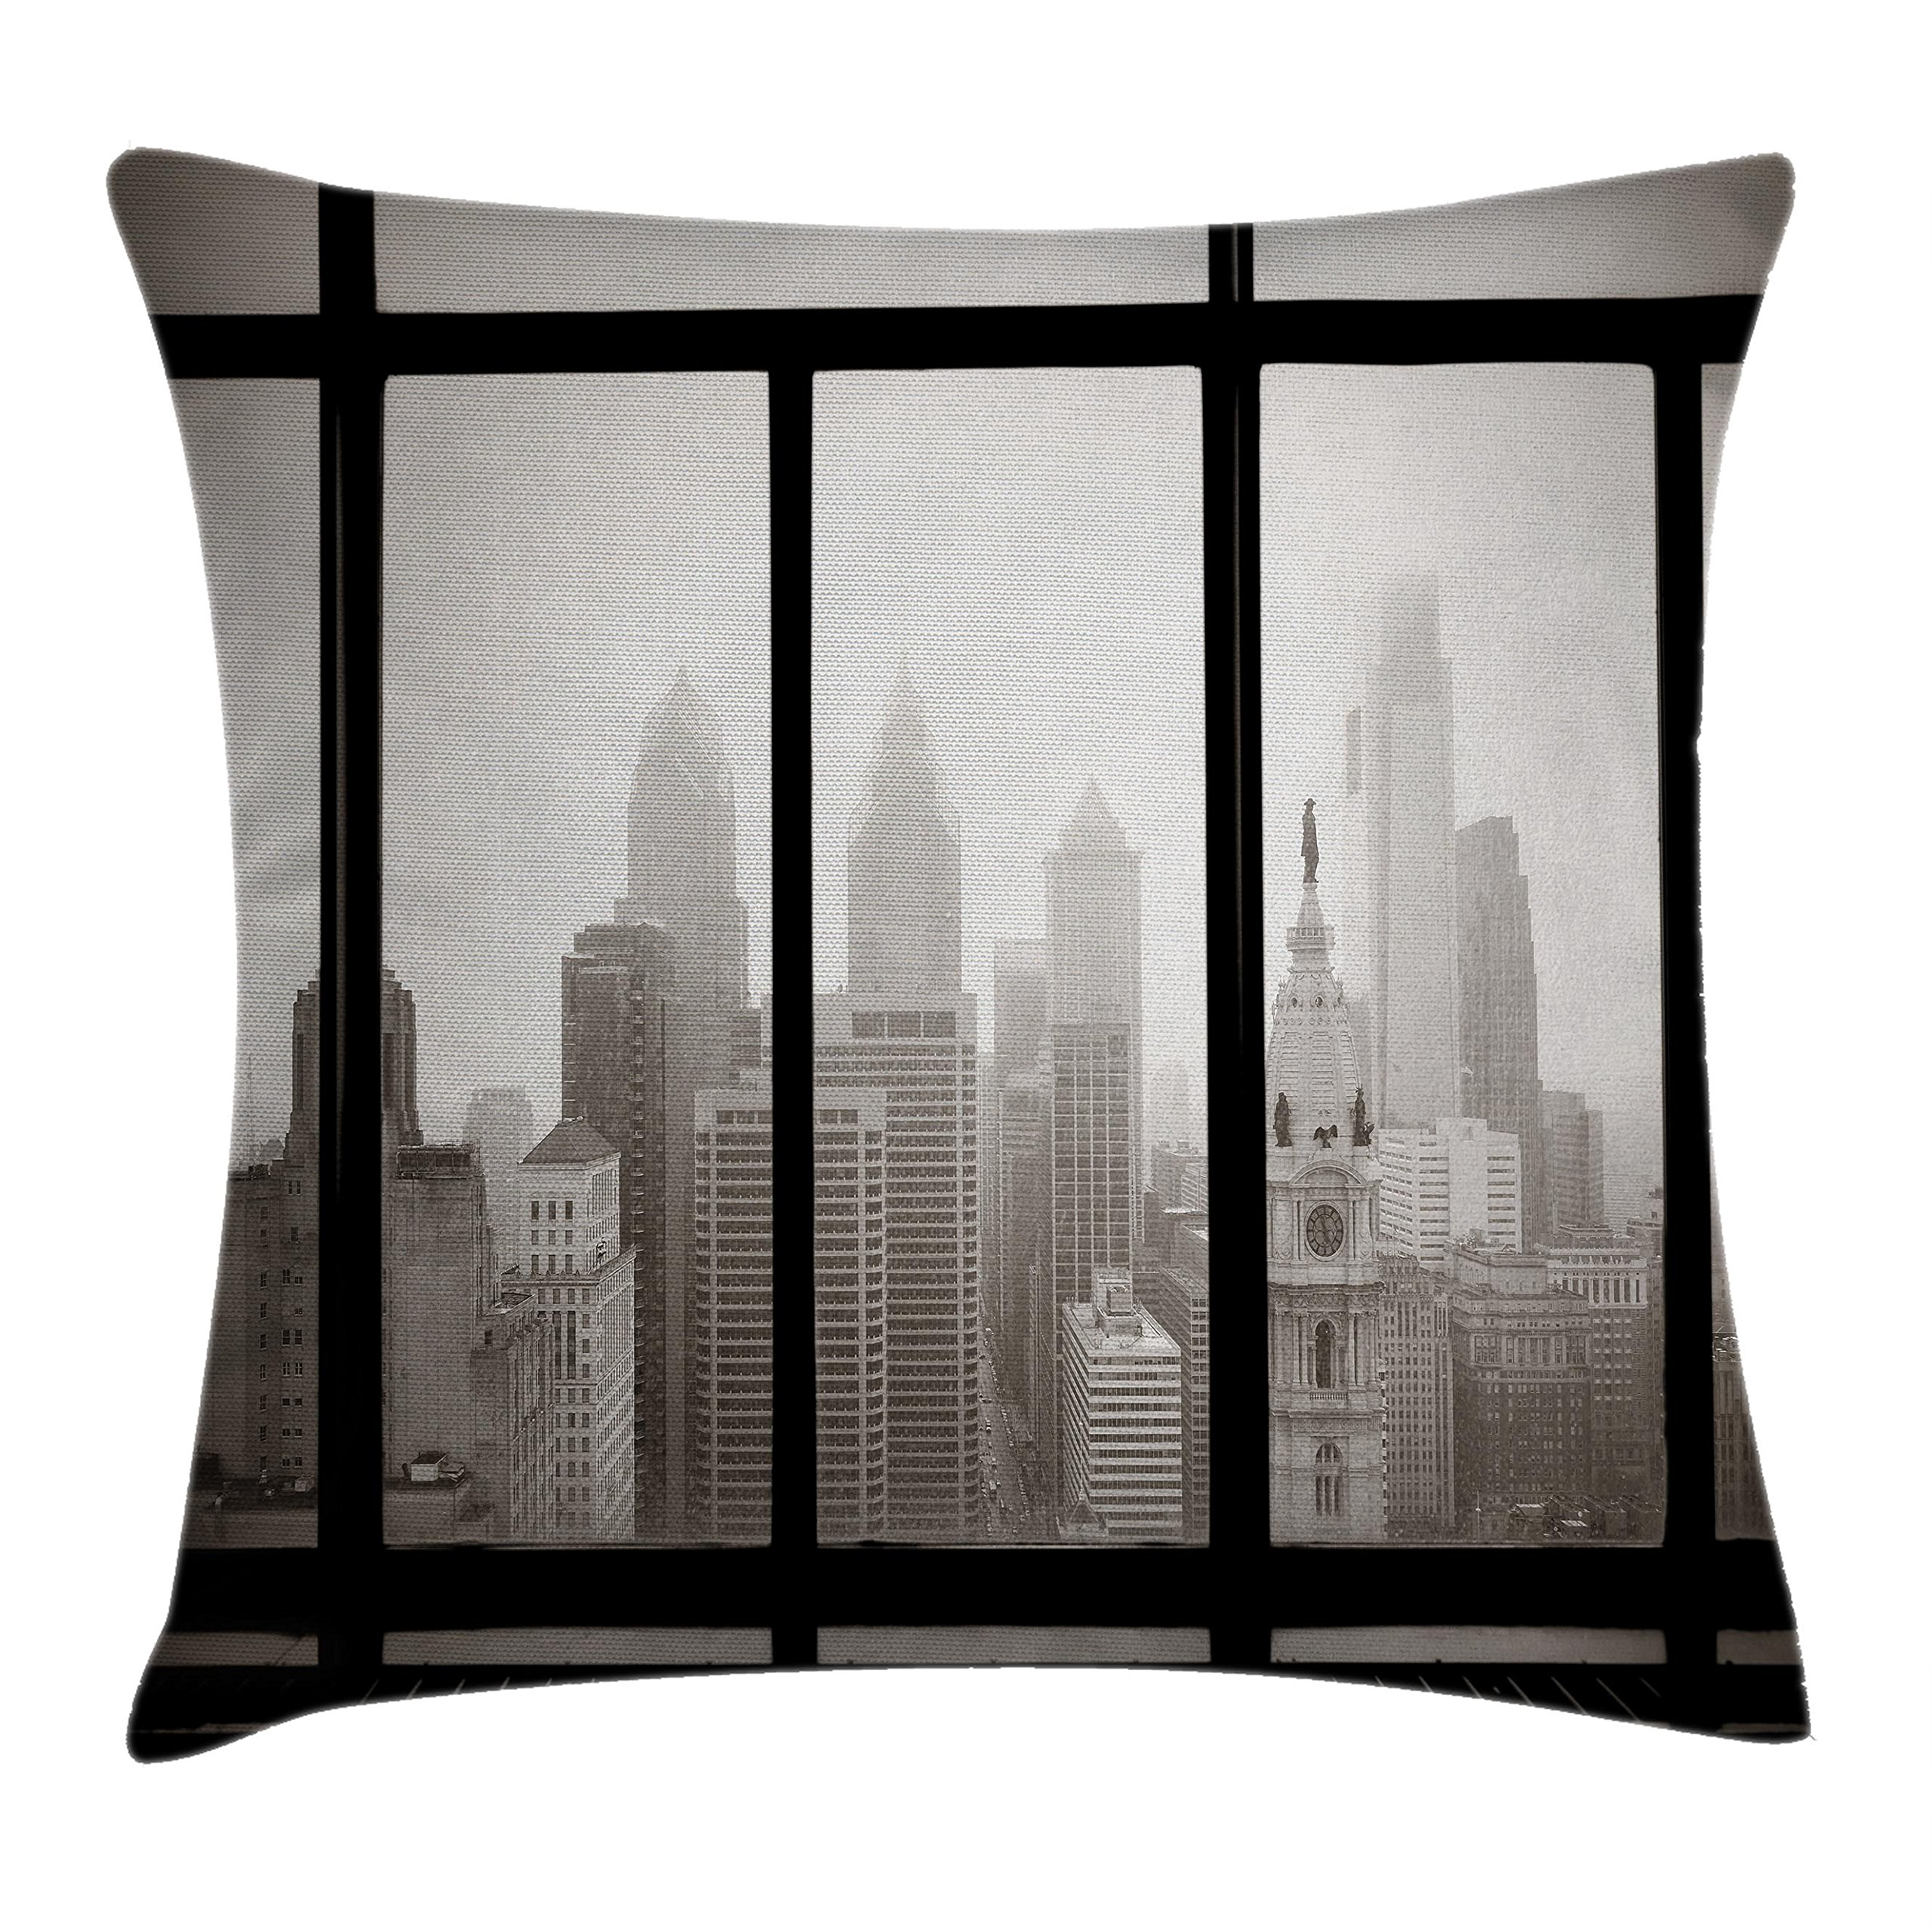 Ambesonne Scenery Throw Pillow Cushion Cover, Philadelphia City Rooftop View Through Window Skyline Landmark Rooftop Travel, Decorative Square Accent Pillow Case, 20 X 20 inches, Grey and Black